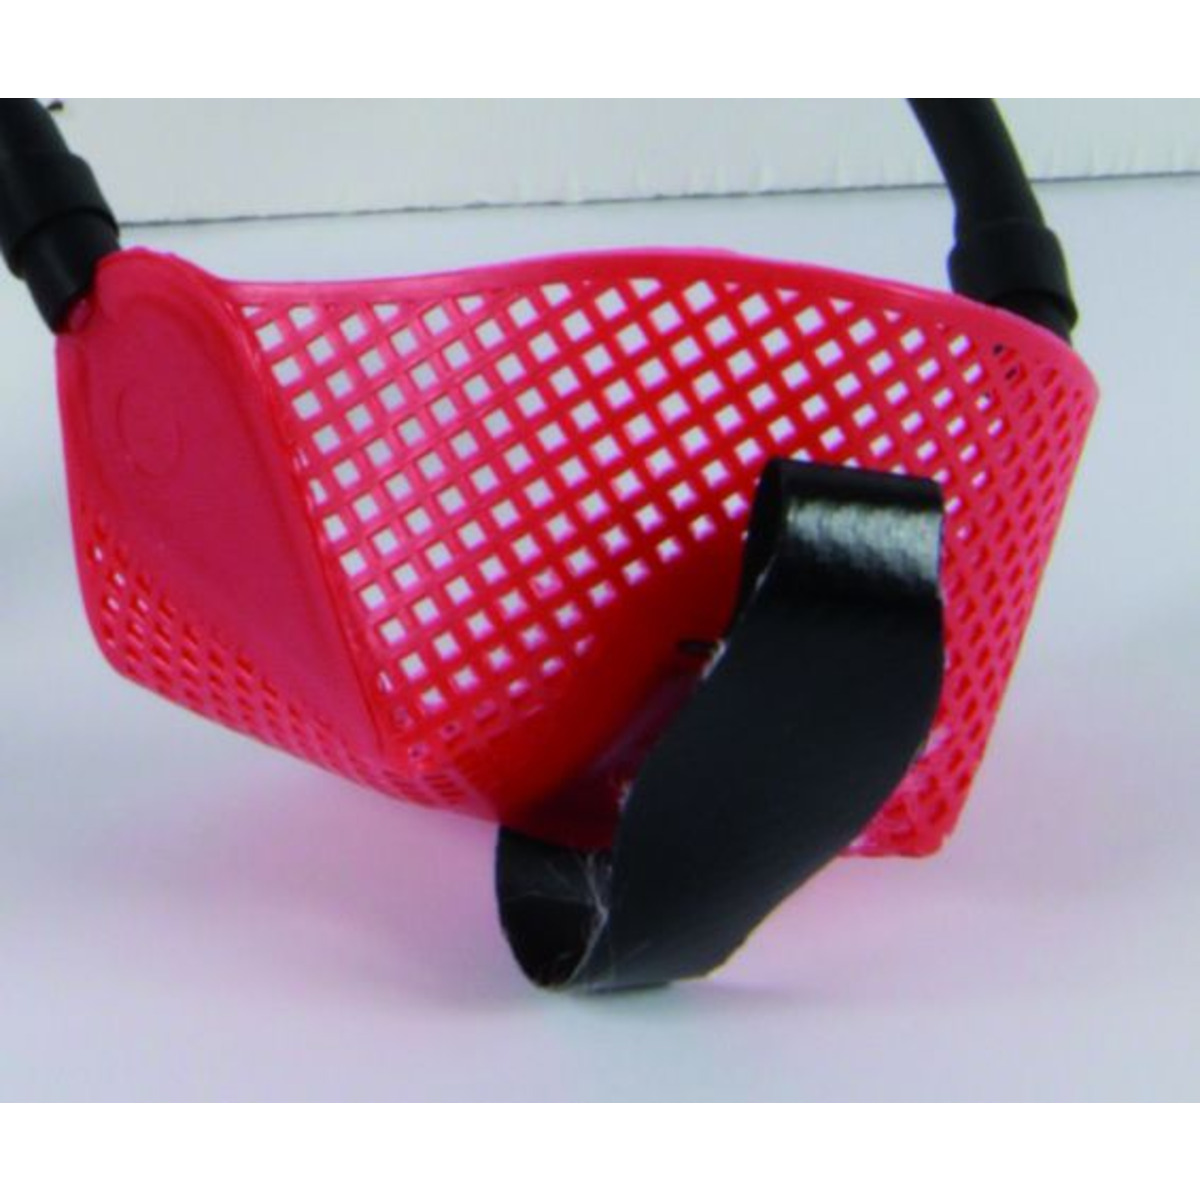 Colmic Schleuderkorb Rubber Mesh Pouch - 8 cm - Rot